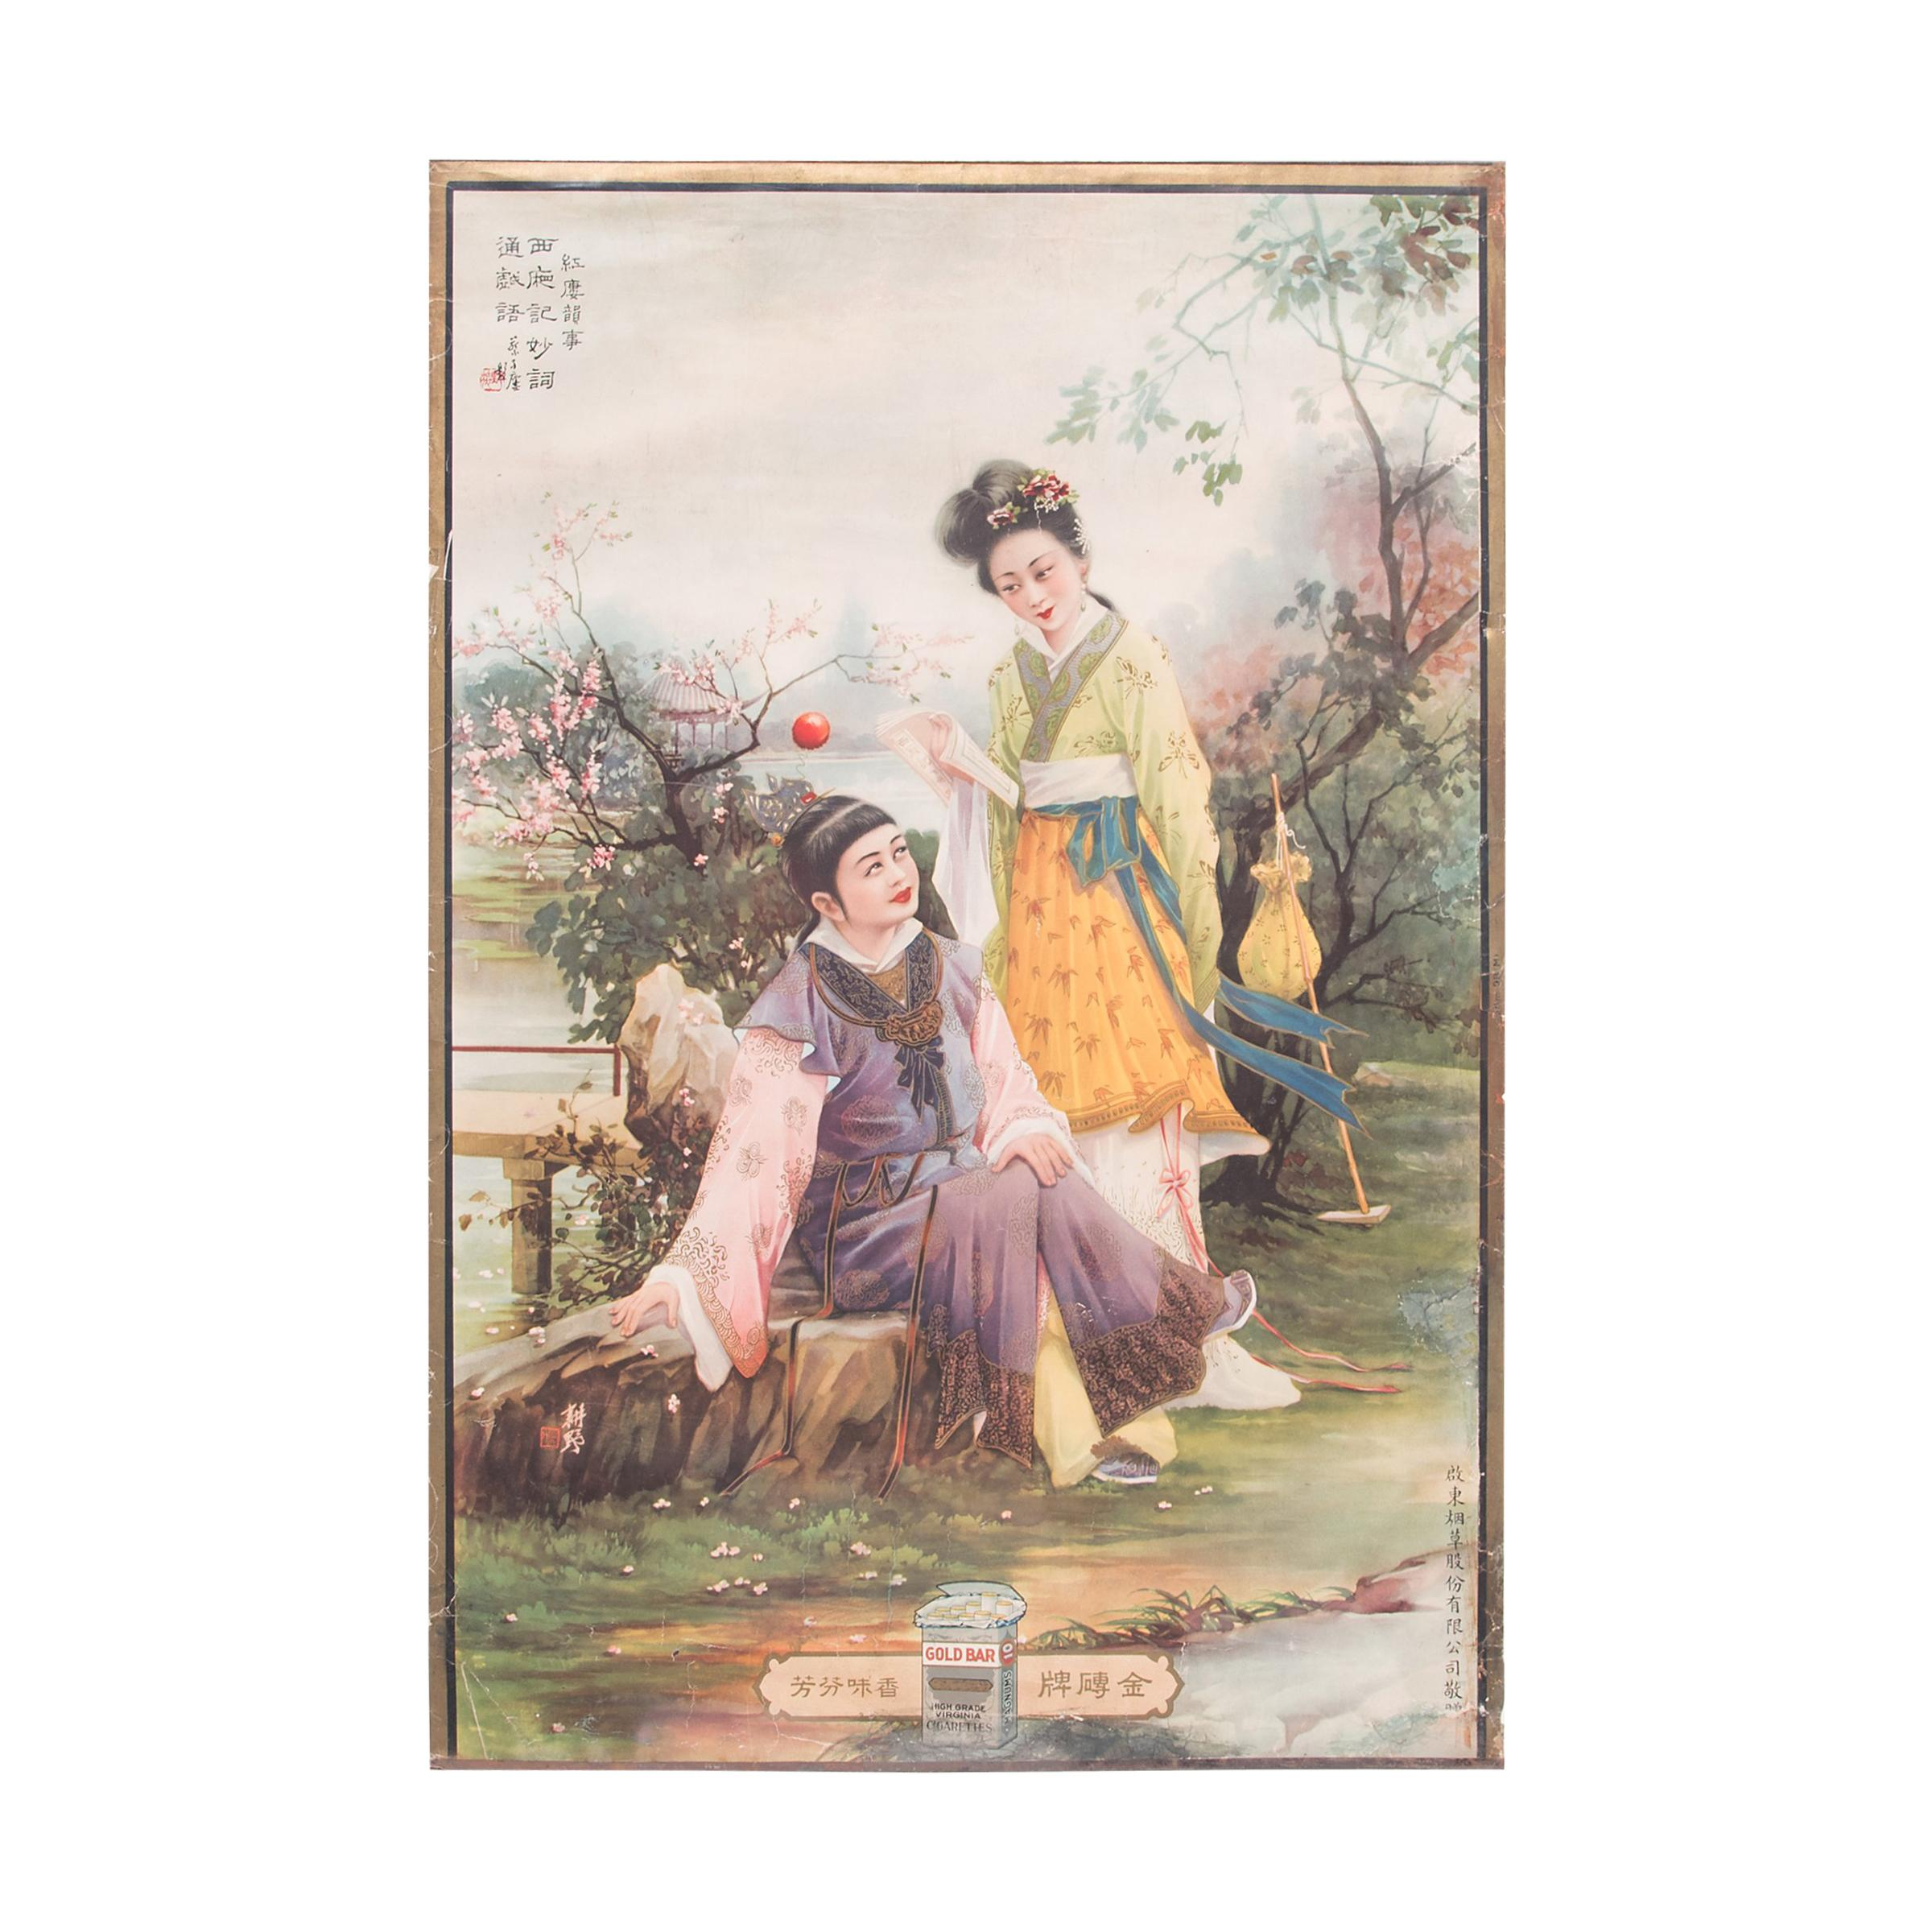 Vintage Chinese Deco Gold Bar Cigarettes Advertisement Poster